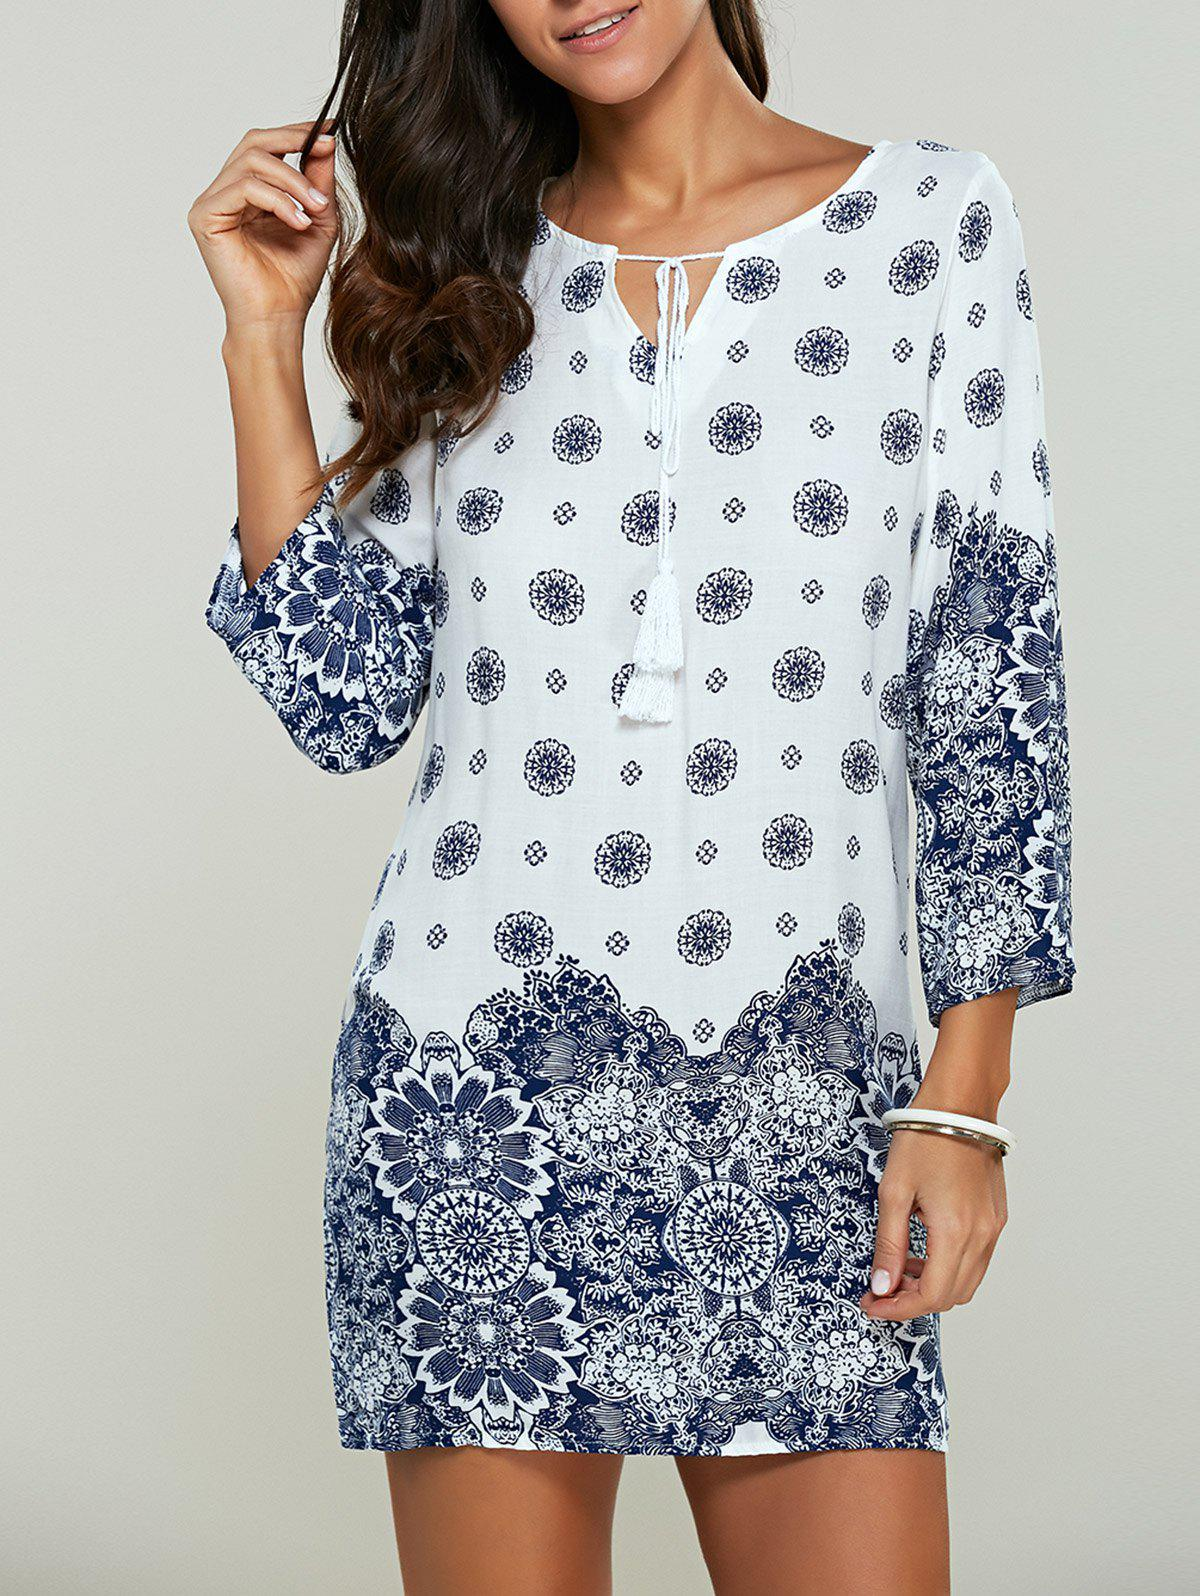 Casual Tribal Print Bohemian Short Shift DressWOMEN<br><br>Size: M; Color: WHITE; Style: Brief; Material: Cotton,Polyester; Silhouette: Straight; Dresses Length: Mini; Neckline: Scoop Neck; Sleeve Length: 3/4 Length Sleeves; Pattern Type: Print; With Belt: No; Season: Fall,Spring,Summer; Weight: 0.1440kg; Package Contents: 1 x Dress;